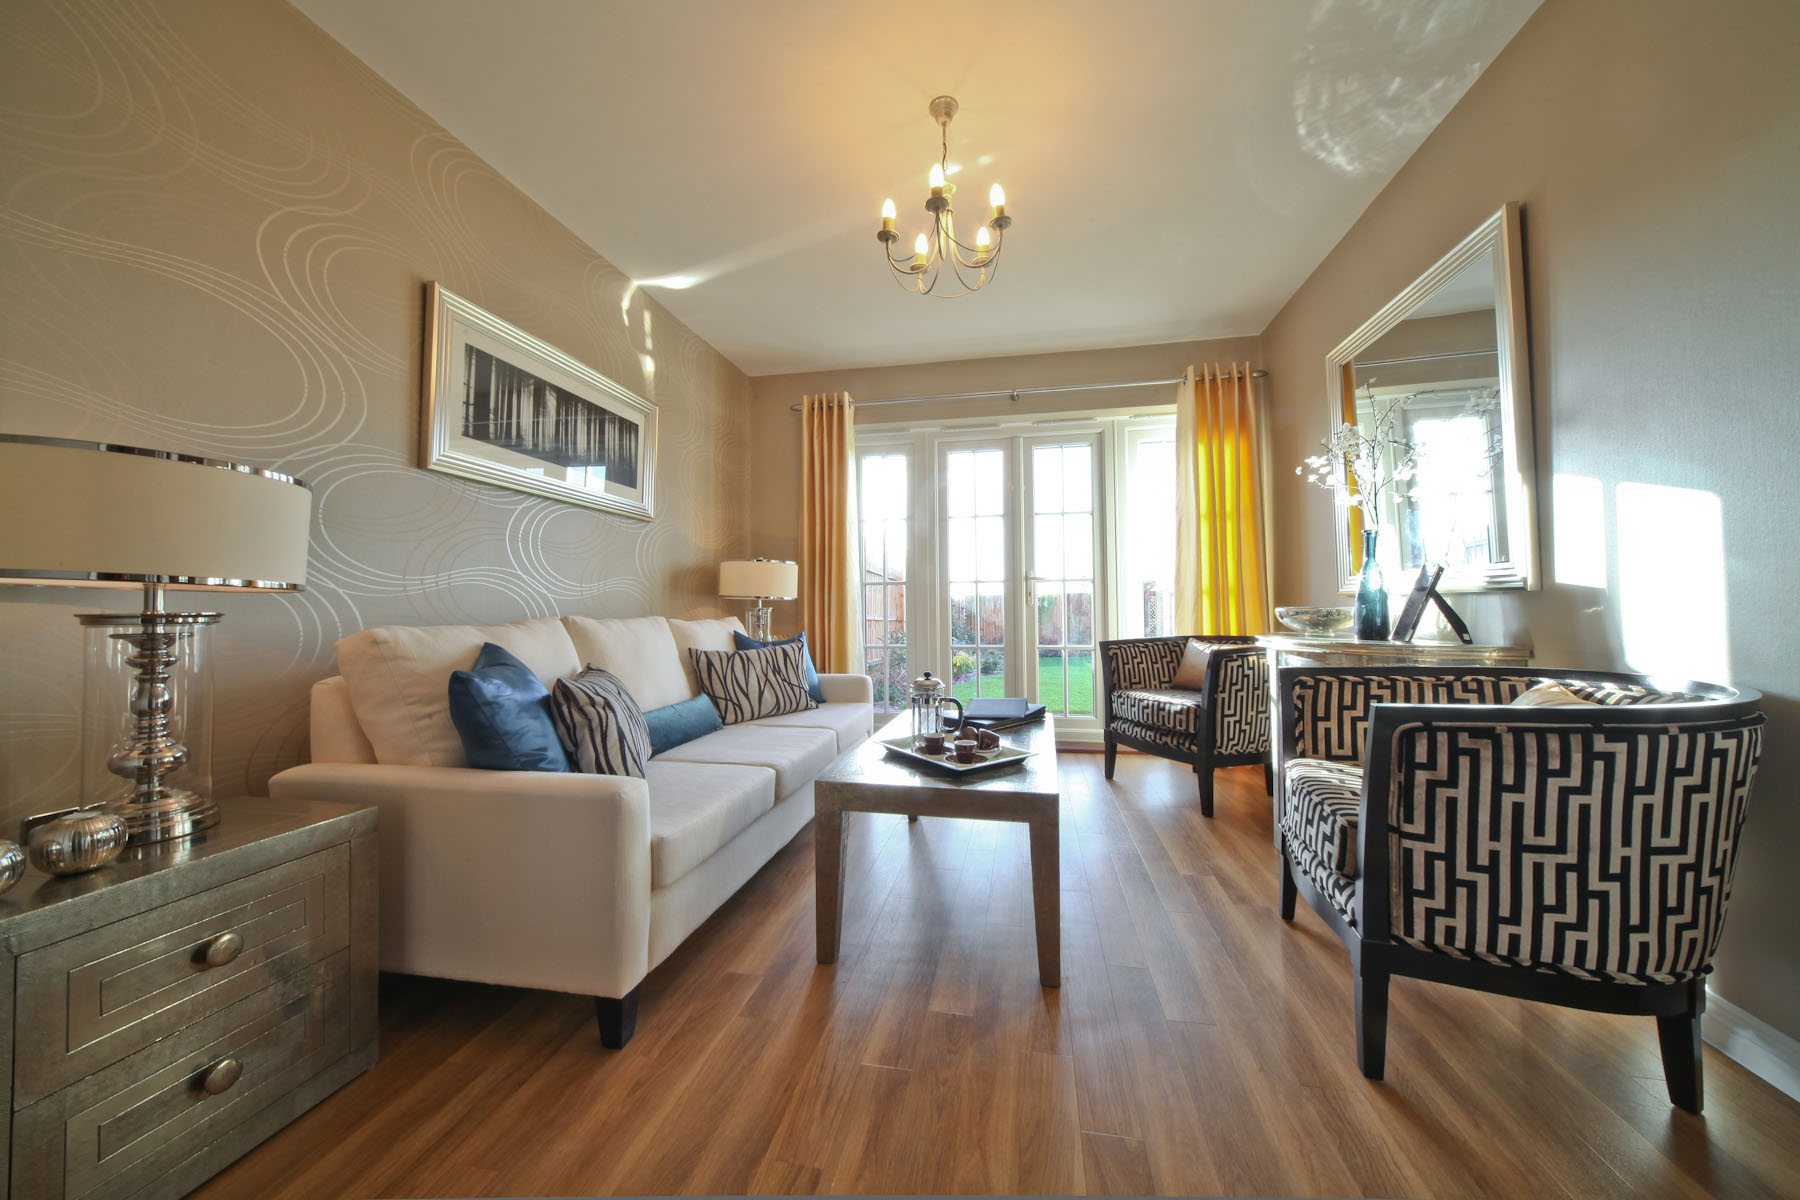 Taylor Wimpey typical garden room